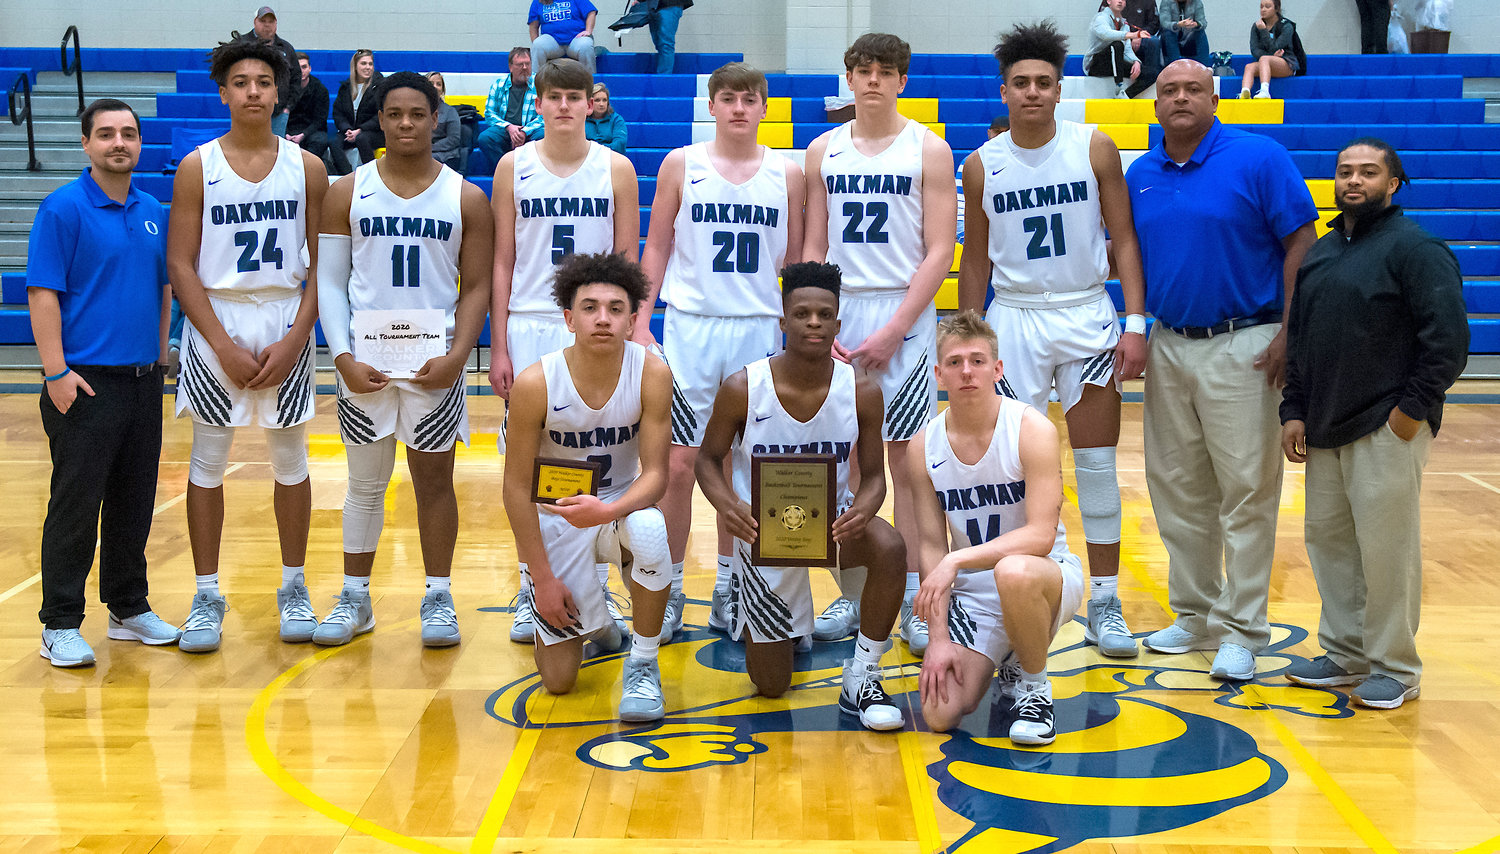 Oakman defeated Carbon Hill 55-44 for the varsity boys championship.